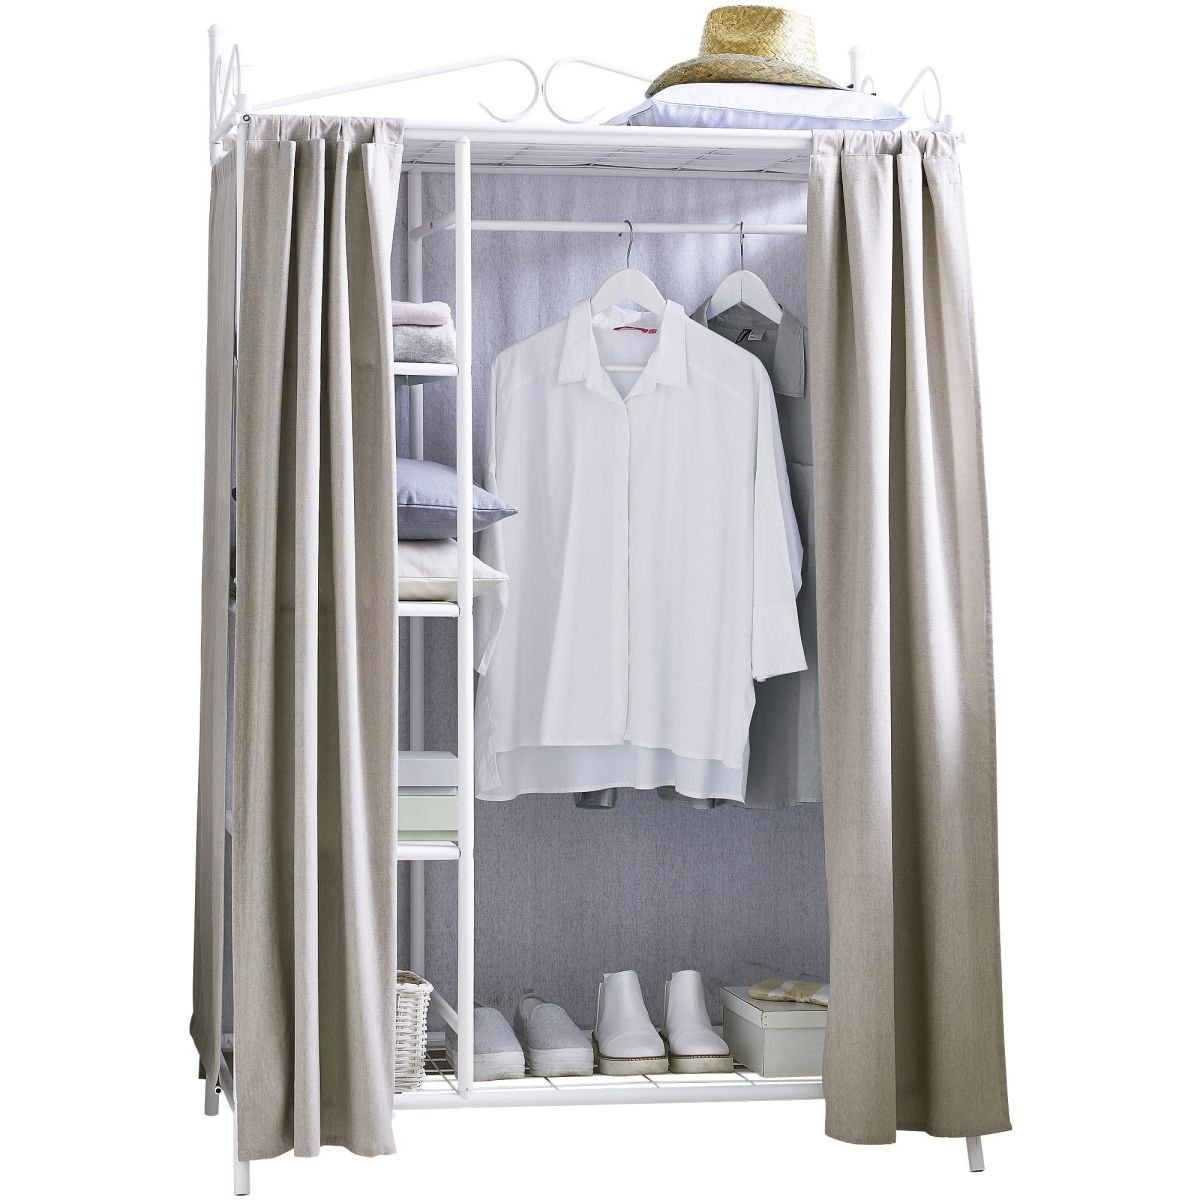 Wardrobe Breezy Metal Frame Cotton Cover White Taupe 109 x 171 x 57 ...